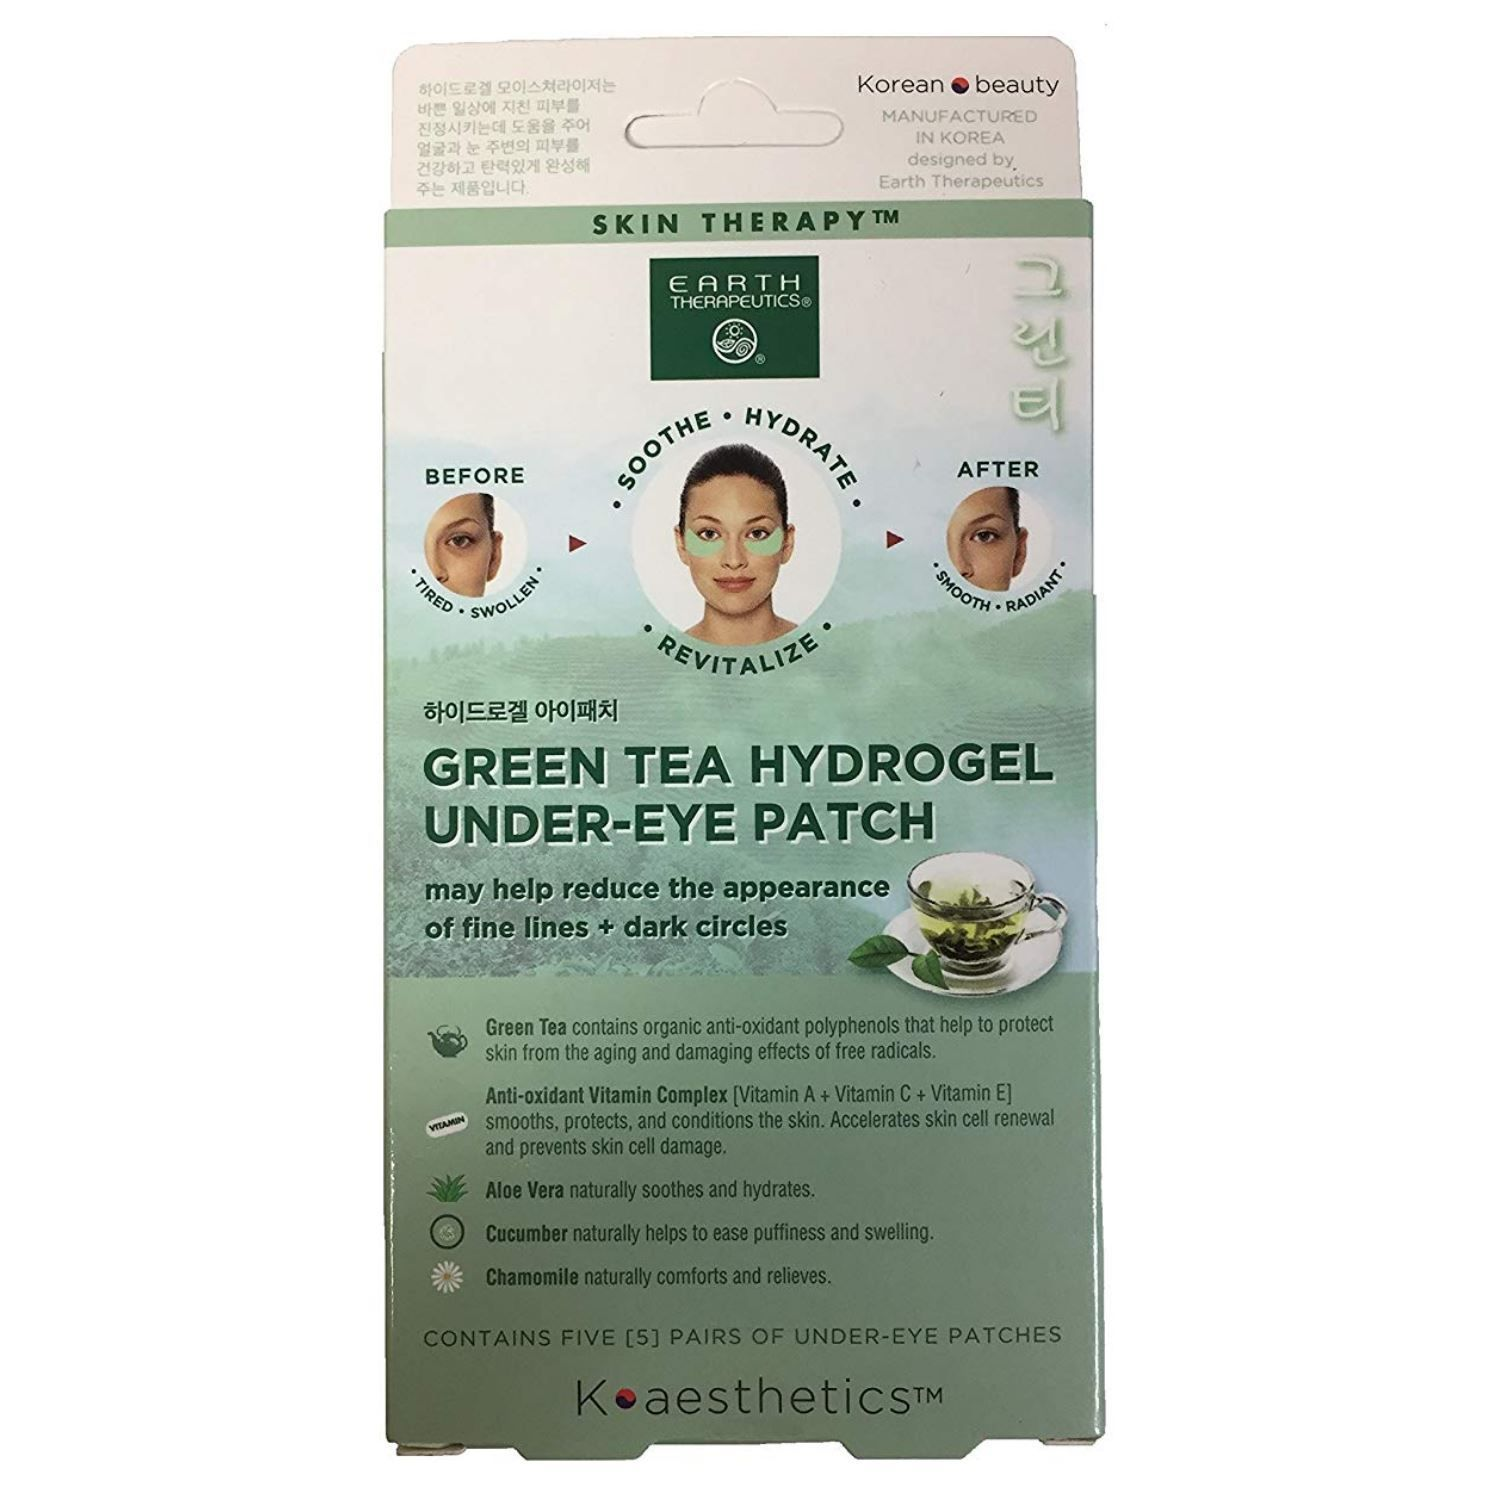 Green Tea Hydrogel Under-Eye Patch